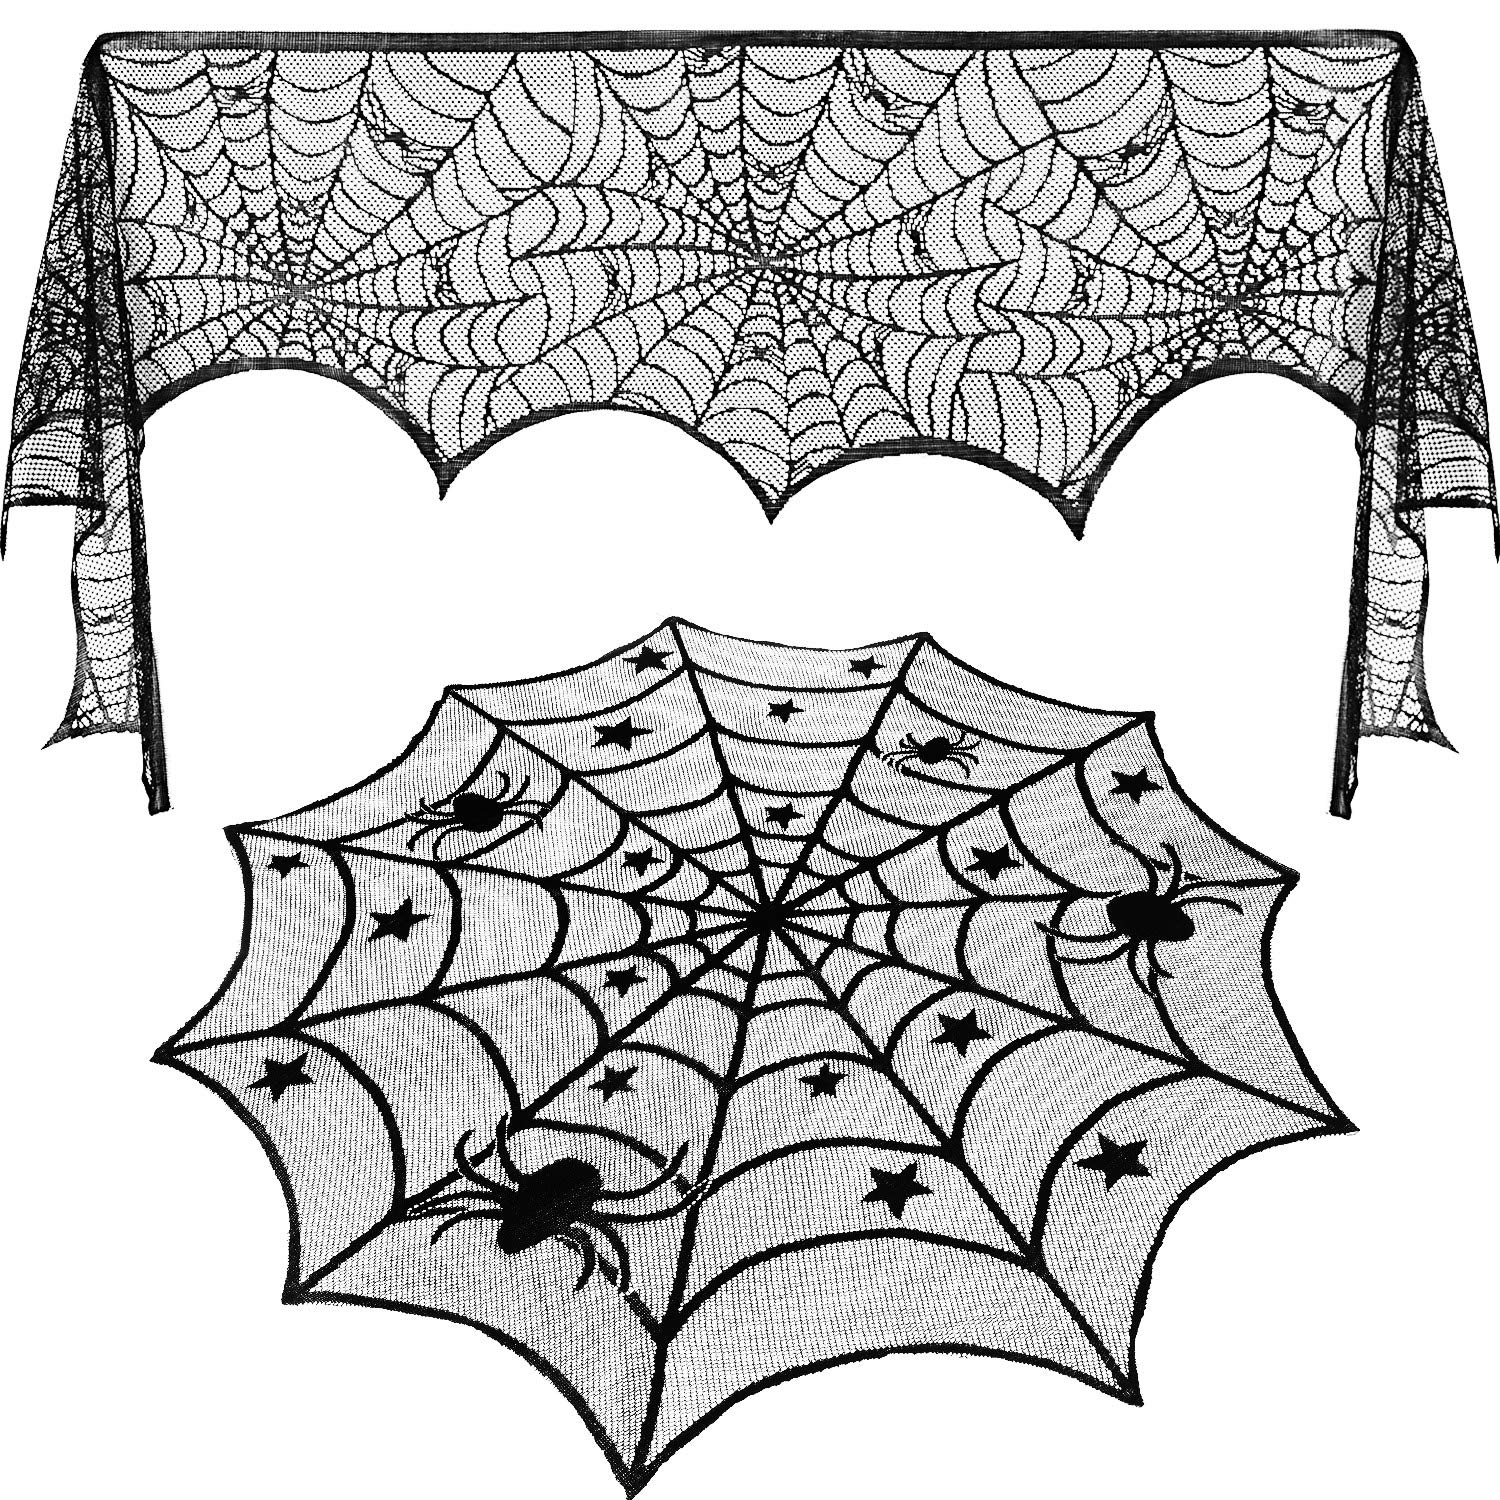 Jovitec 2 Pieces Halloween Lace Spiderweb, 17.7 x 98.4 inch Cobweb Fireplace Scarf Mysterious and 40 inch Spider Table Topper Lace Spiderweb for Halloween Christmas Party Door Window Table Decoration